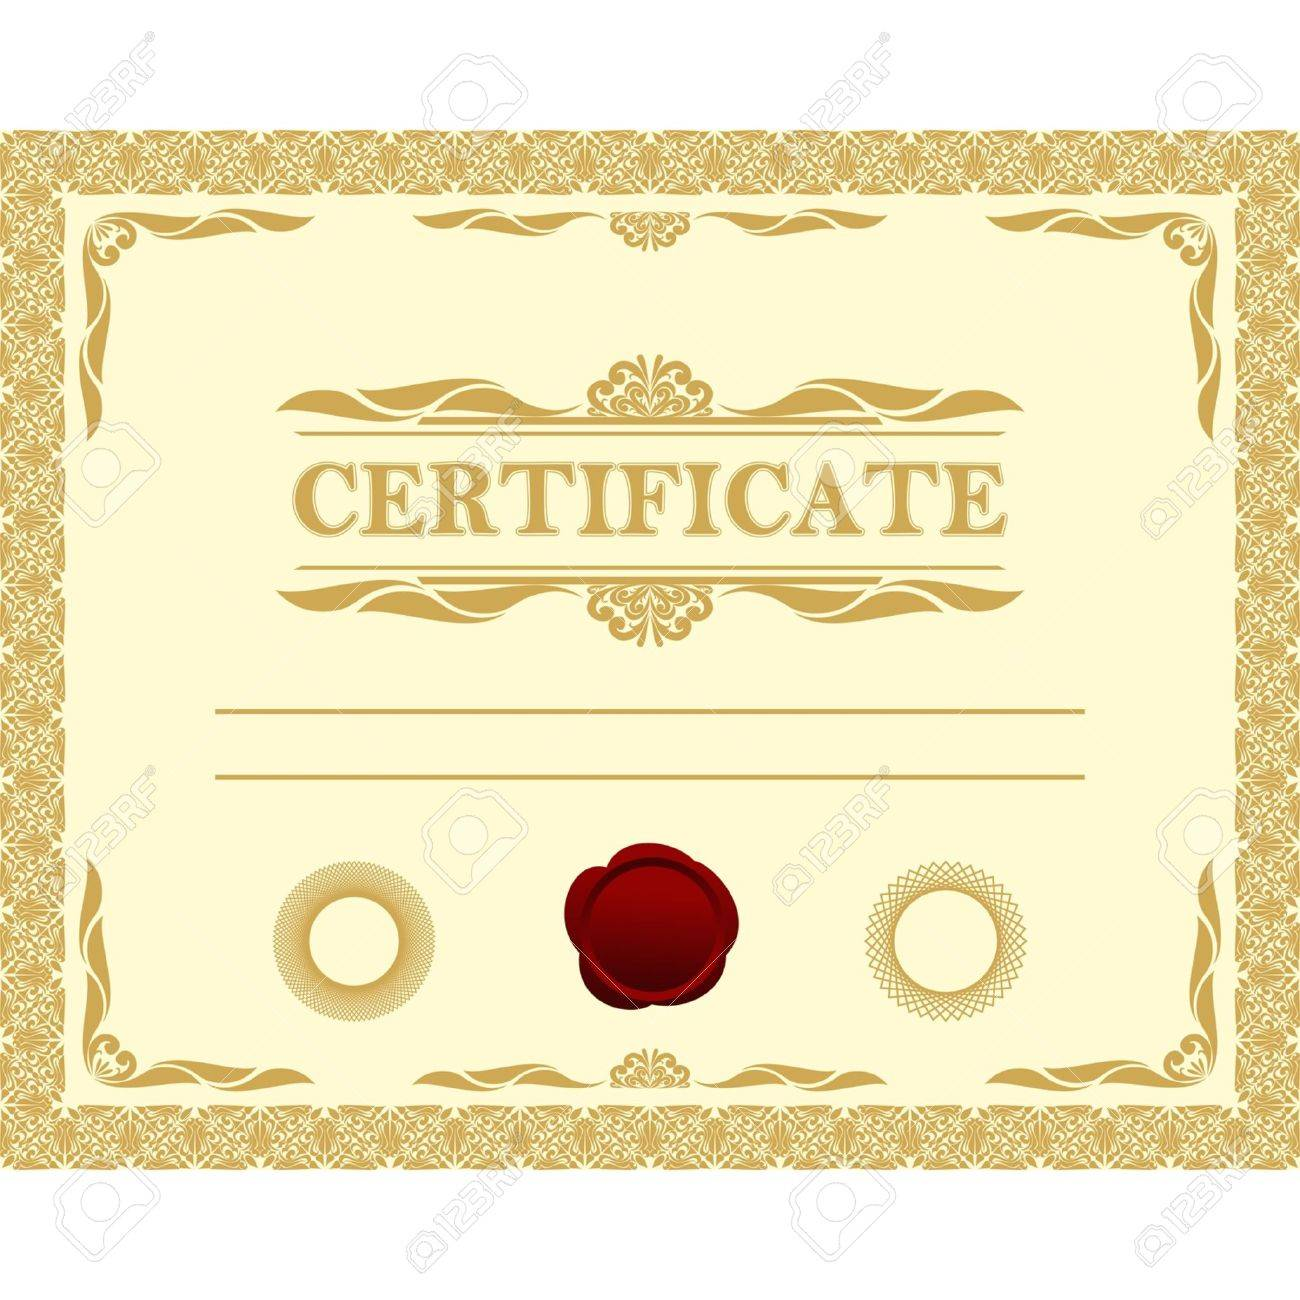 Certificate template royalty free cliparts vectors and stock certificate template stock vector 16298438 xflitez Gallery